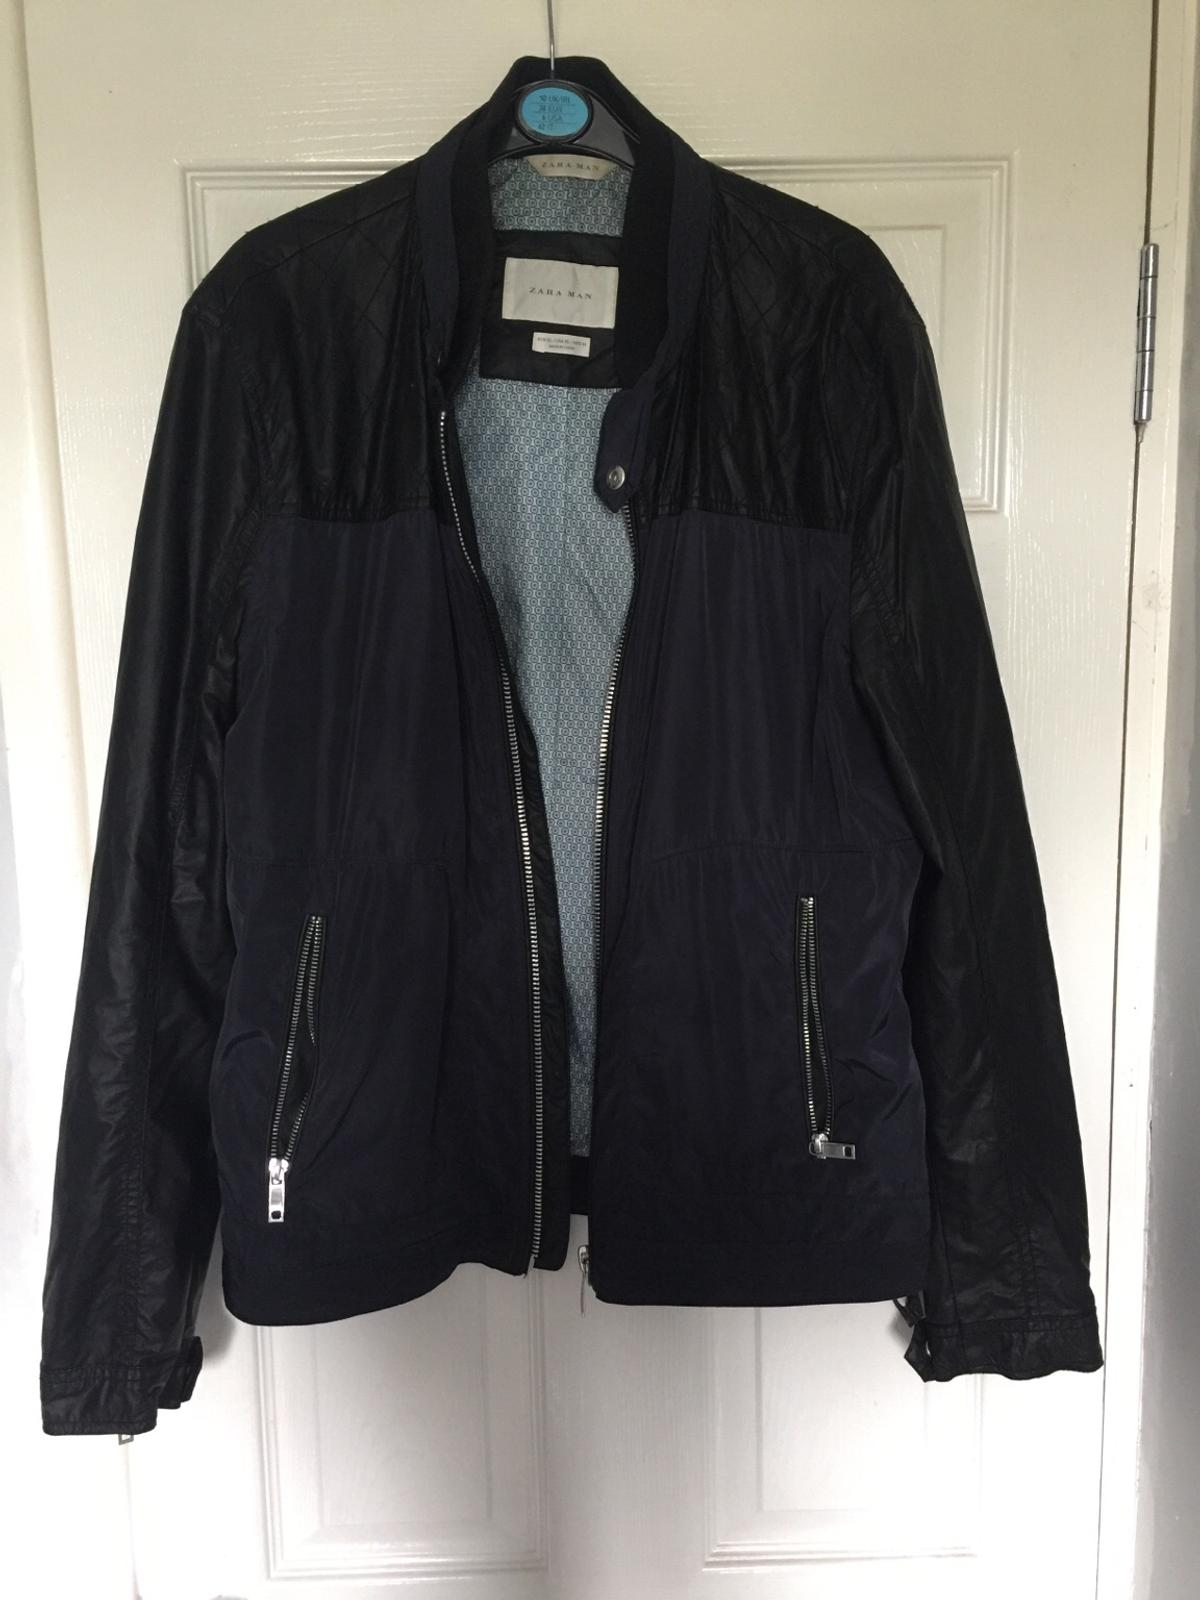 730a9065 Zara Man waterproof jacket in B63 Dudley for £5.00 for sale - Shpock